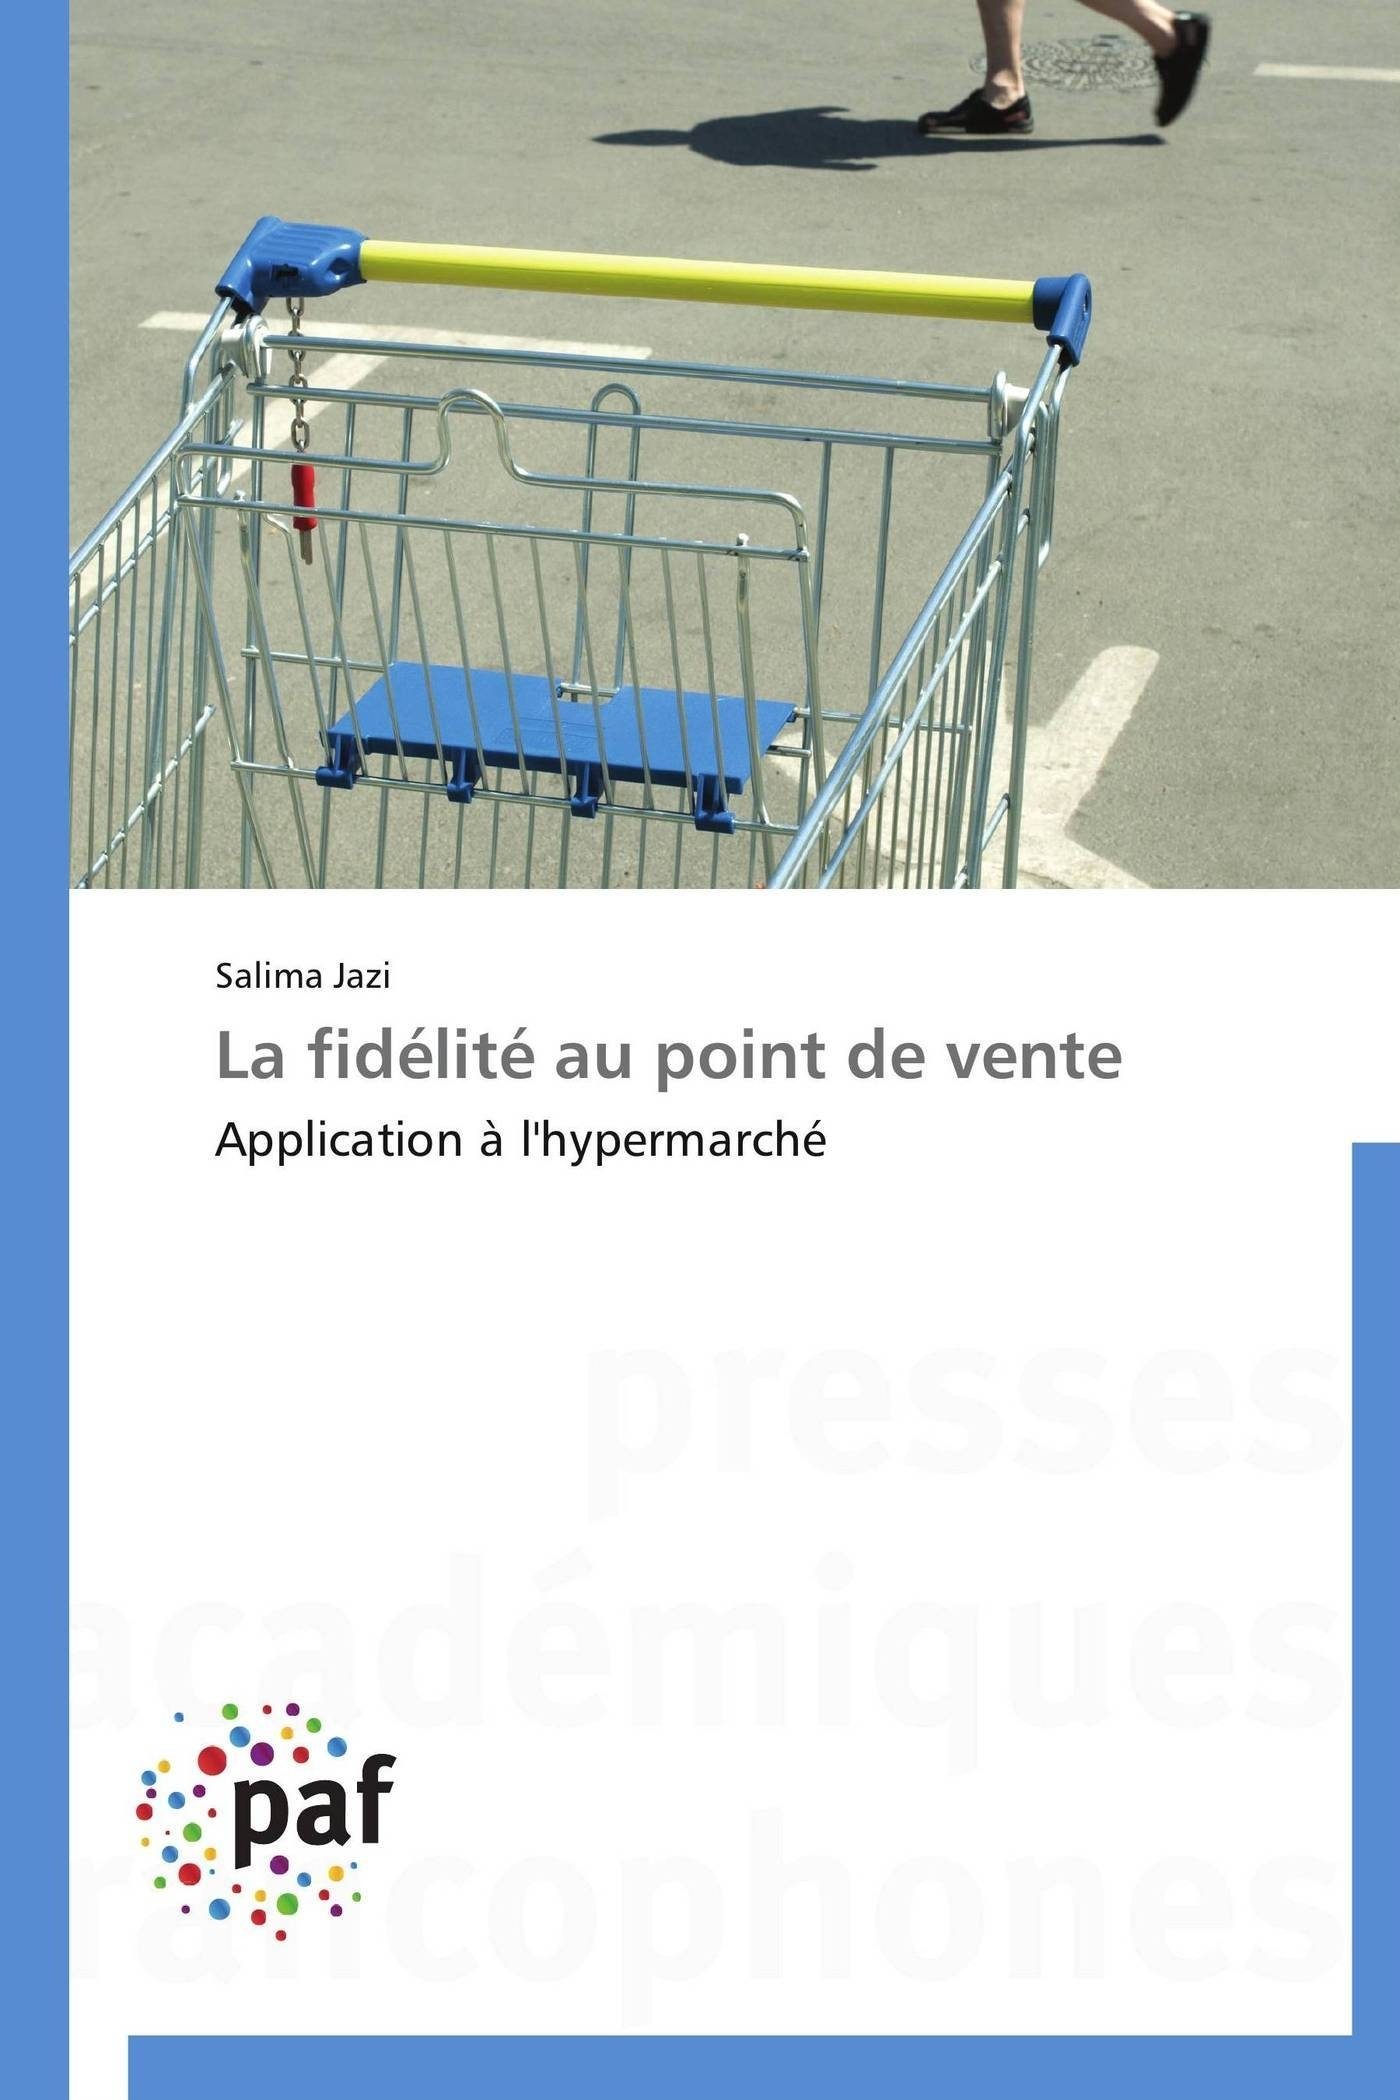 LA FIDELITE AU POINT DE VENTE